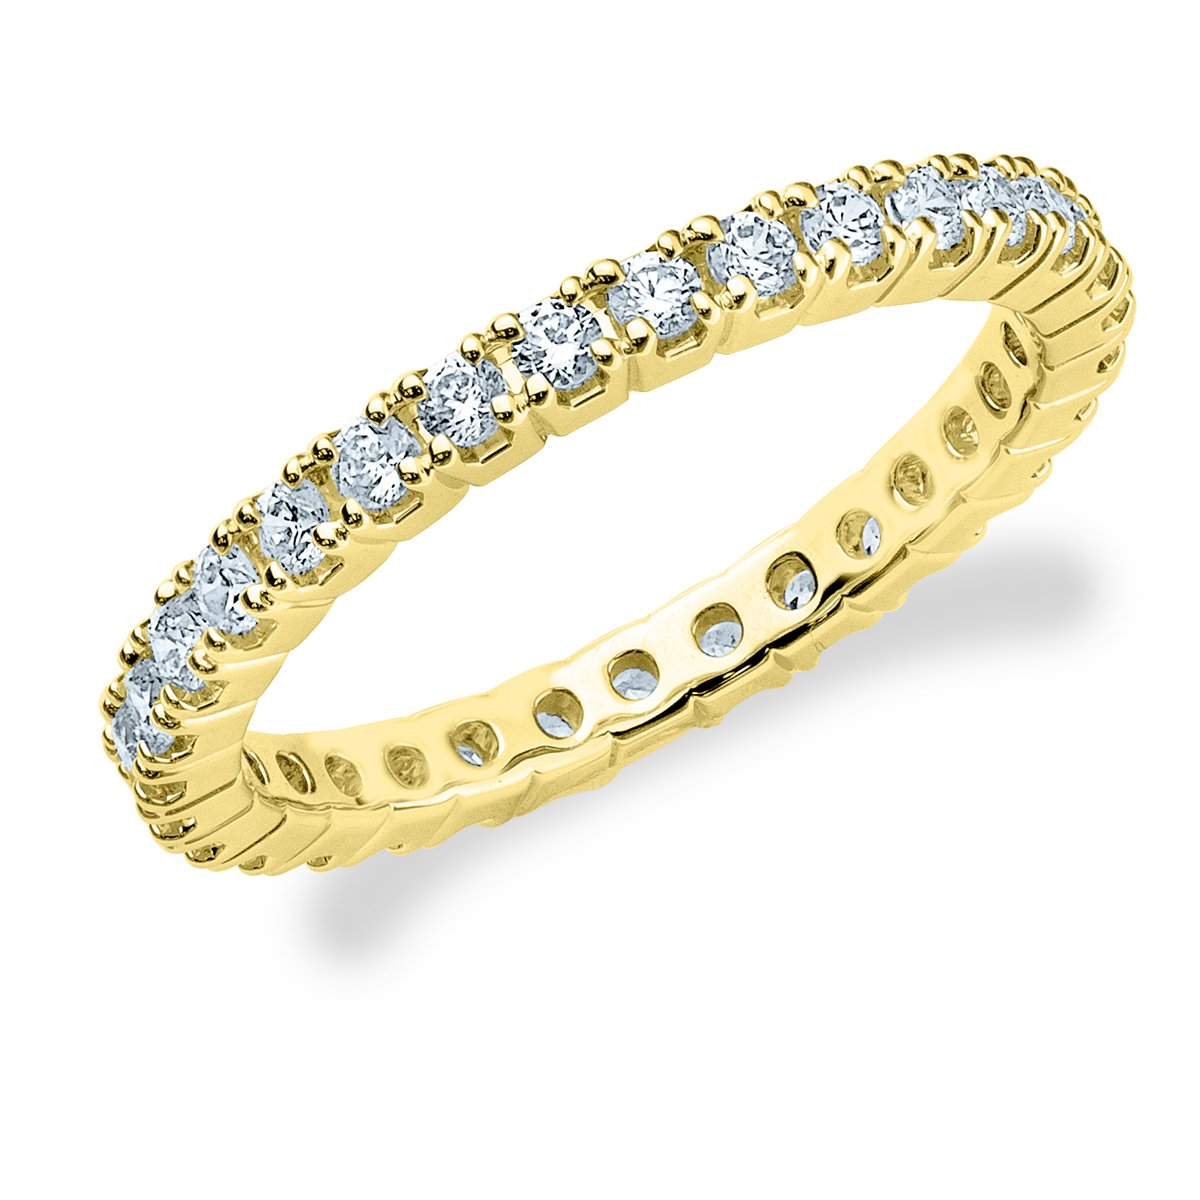 14K Yellow Gold Diamond Split Prong Set Eternity Band (1/2 cttw, G-H Color, SI1-SI2 Clarity) Size 6